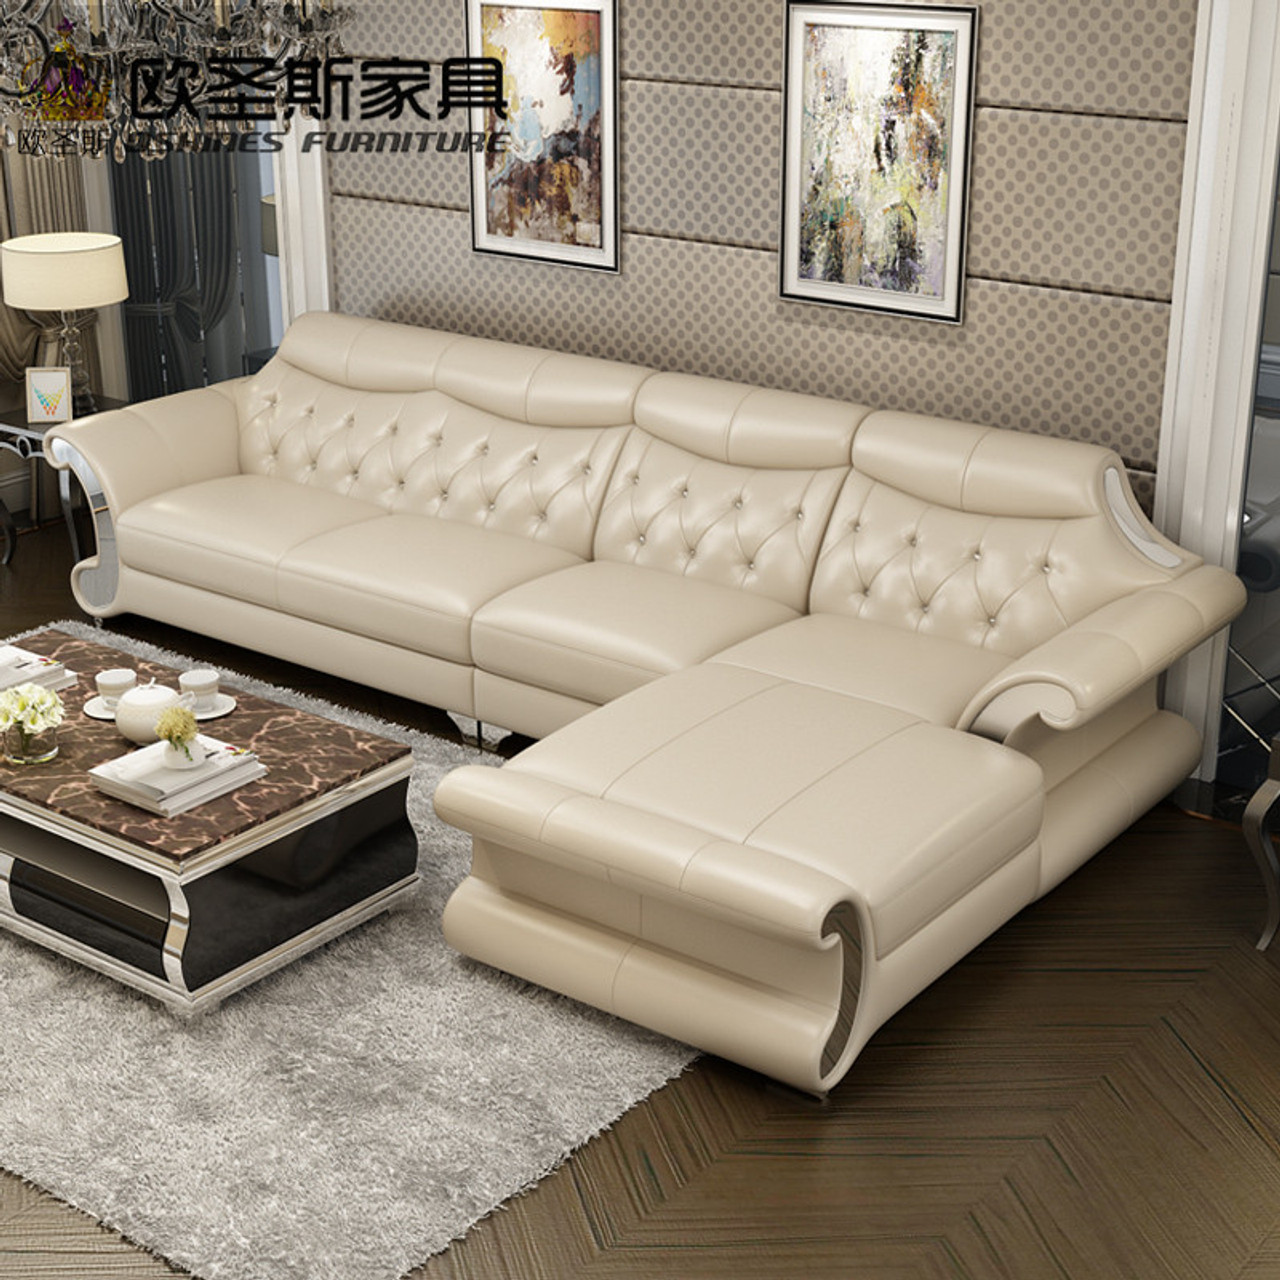 Beautiful post modern bright colored sleeper couch living ...